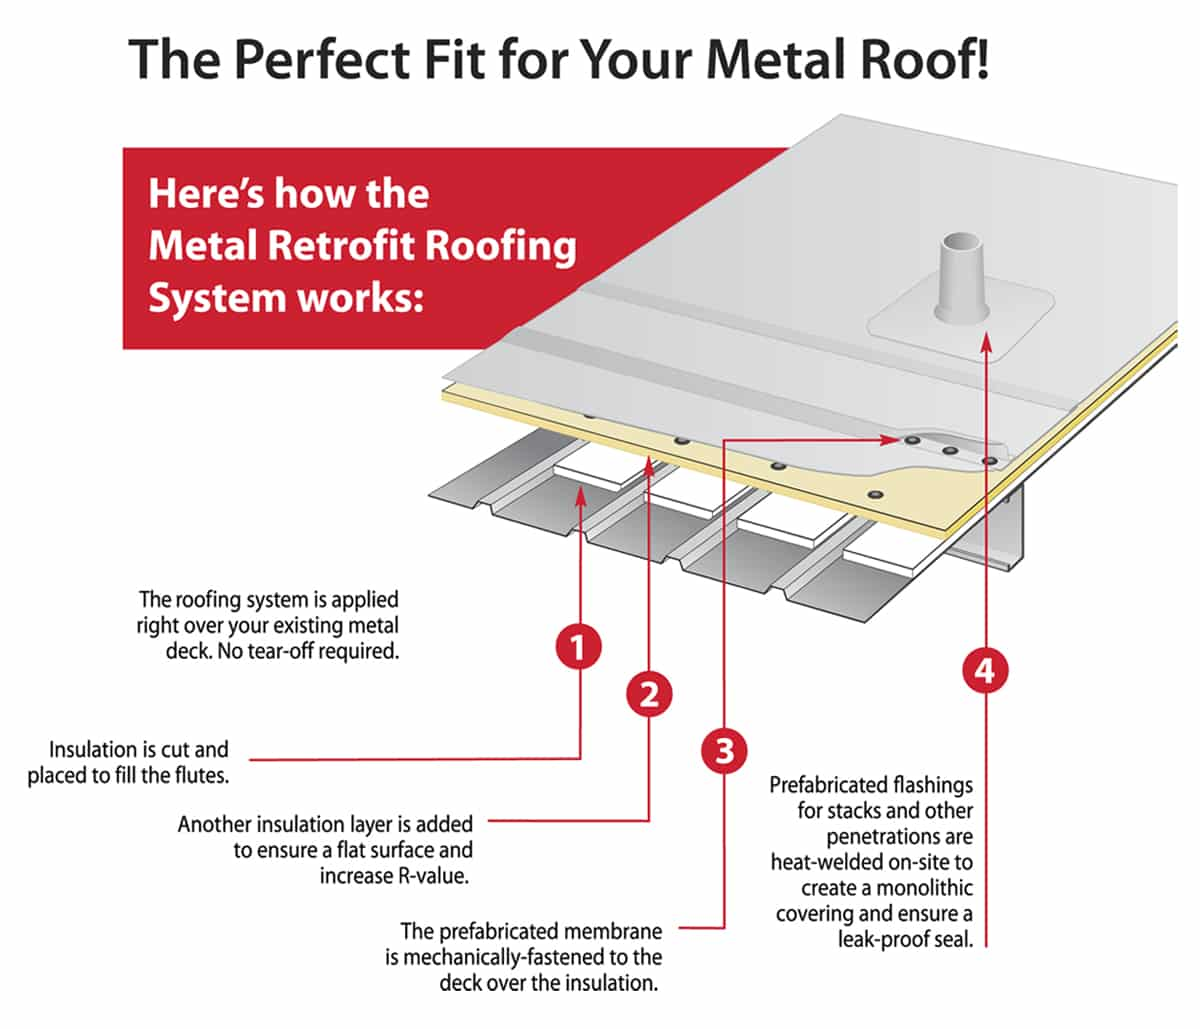 Sentry Roofing Inc Metal Retrofit Roofing System Steps